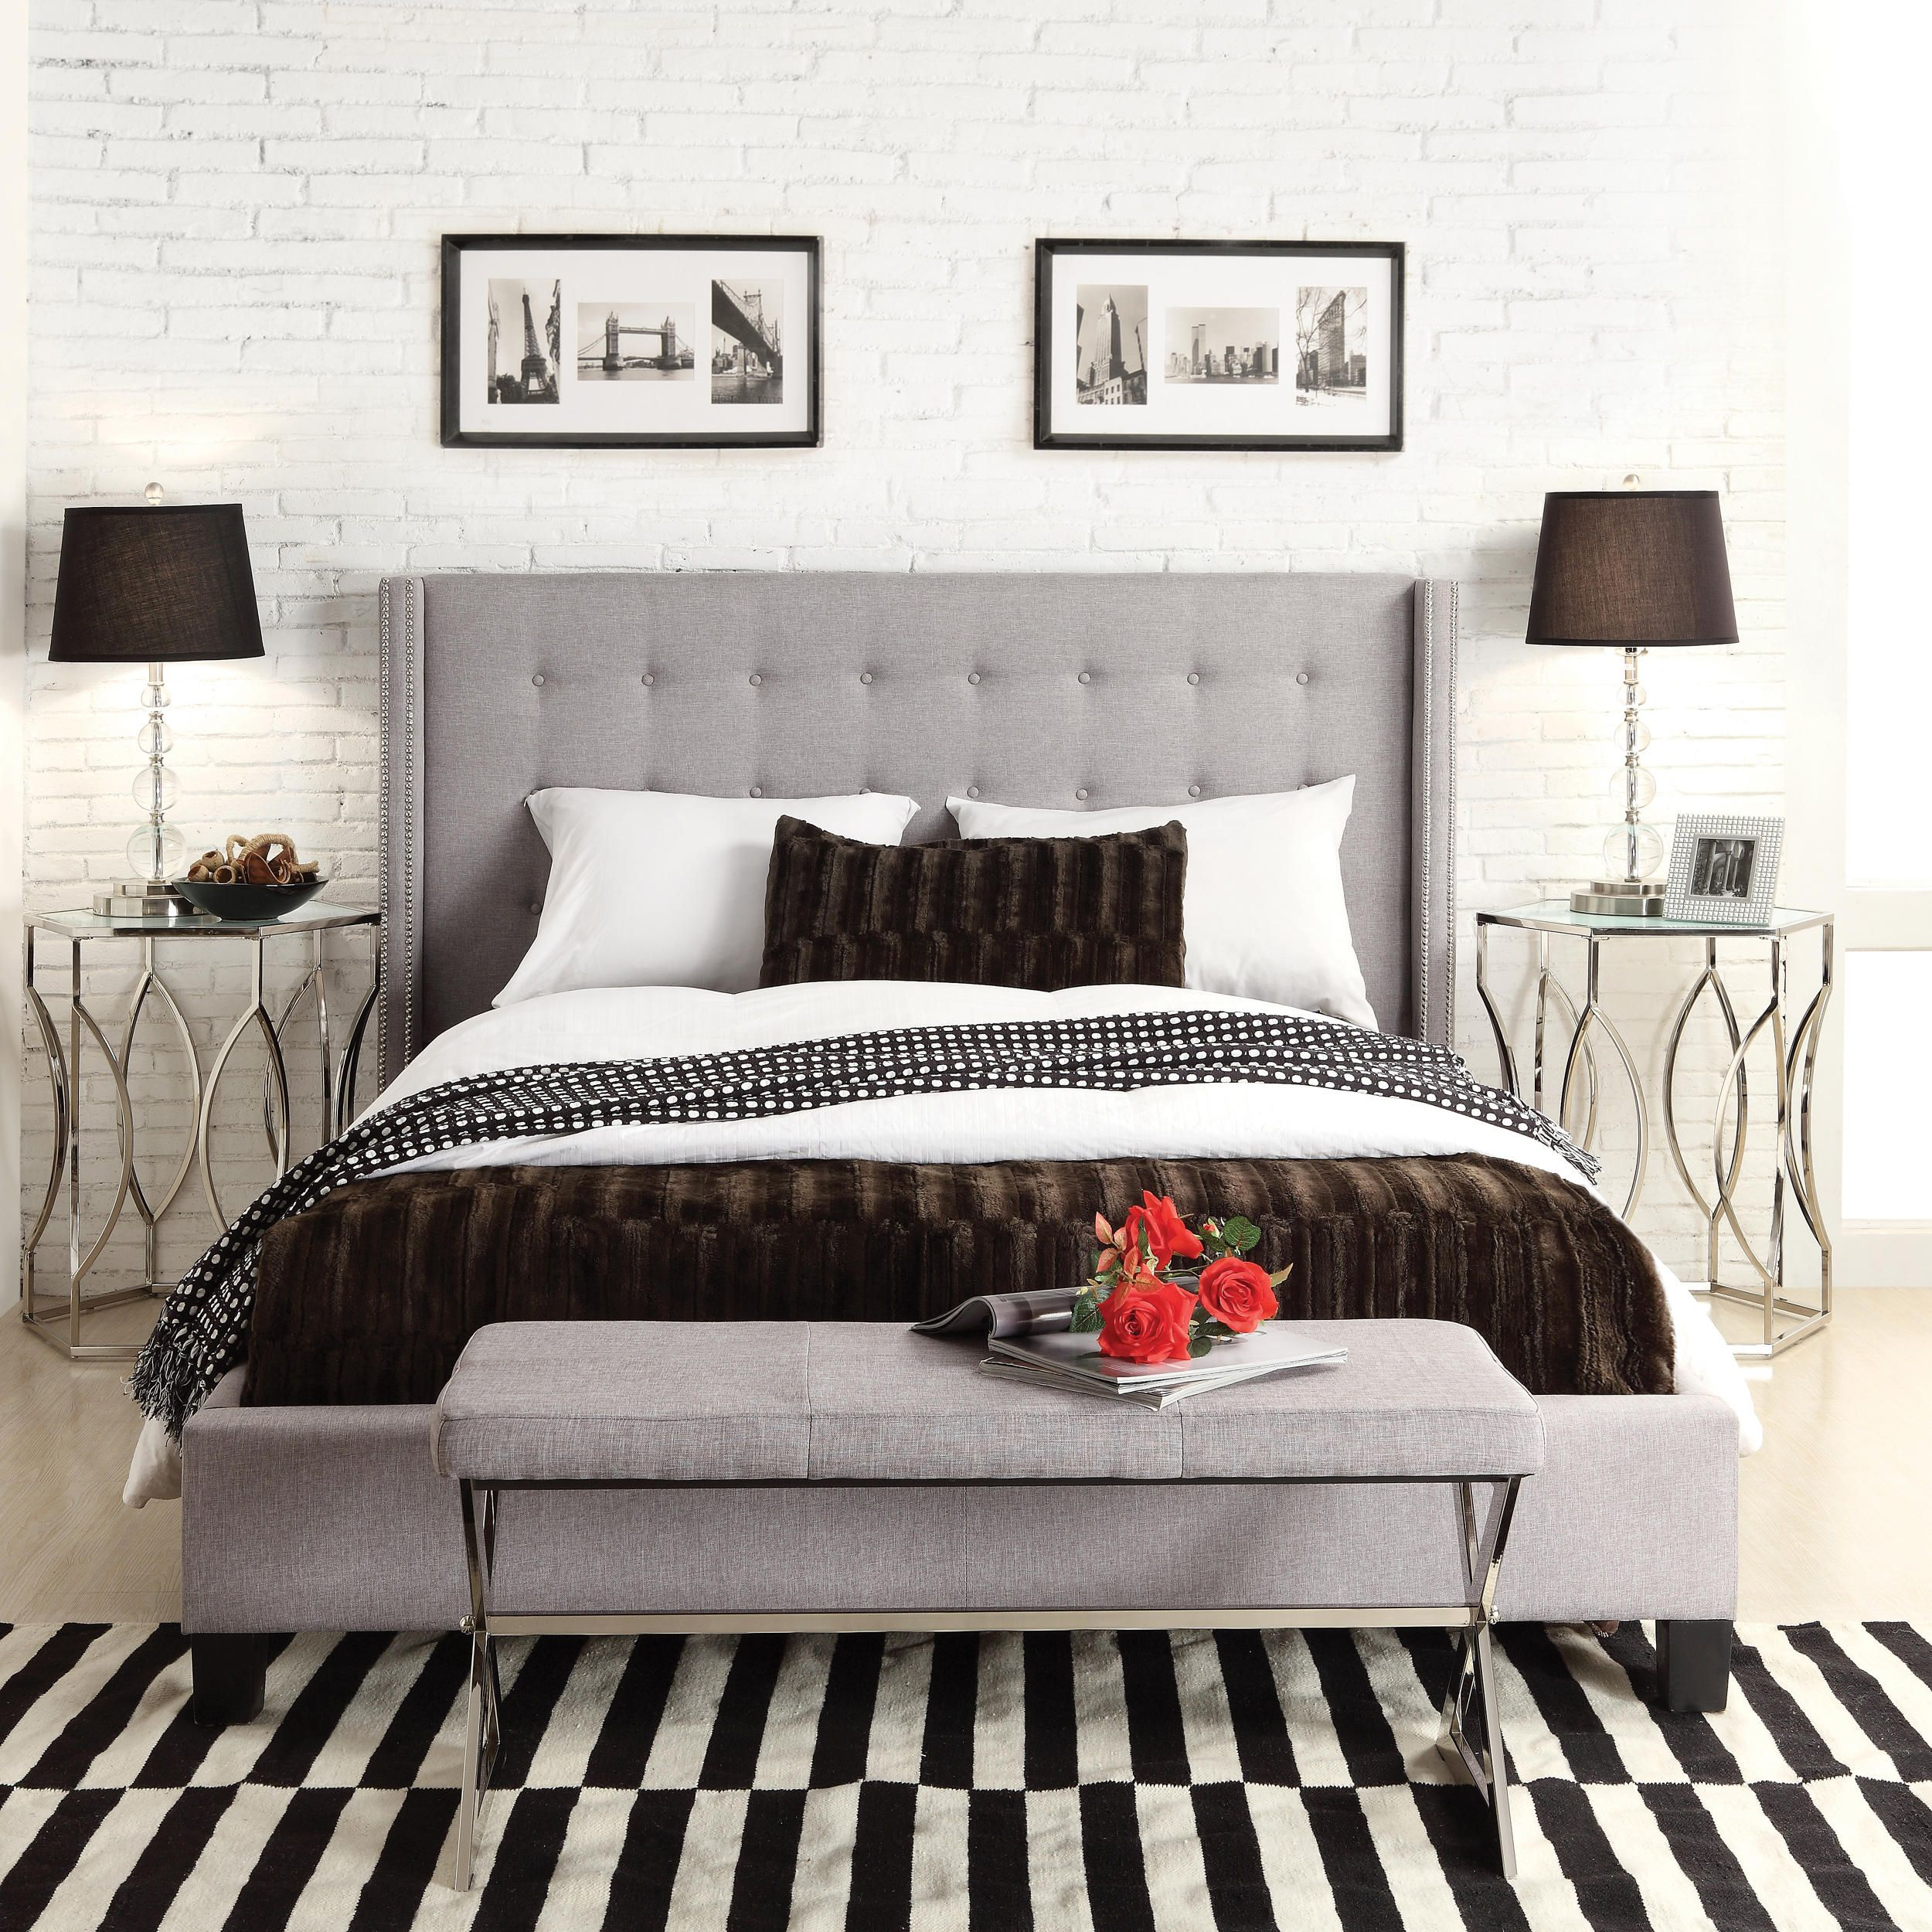 furniture bed linen button wingback king new tufted design charcoal skyline of in grey nail